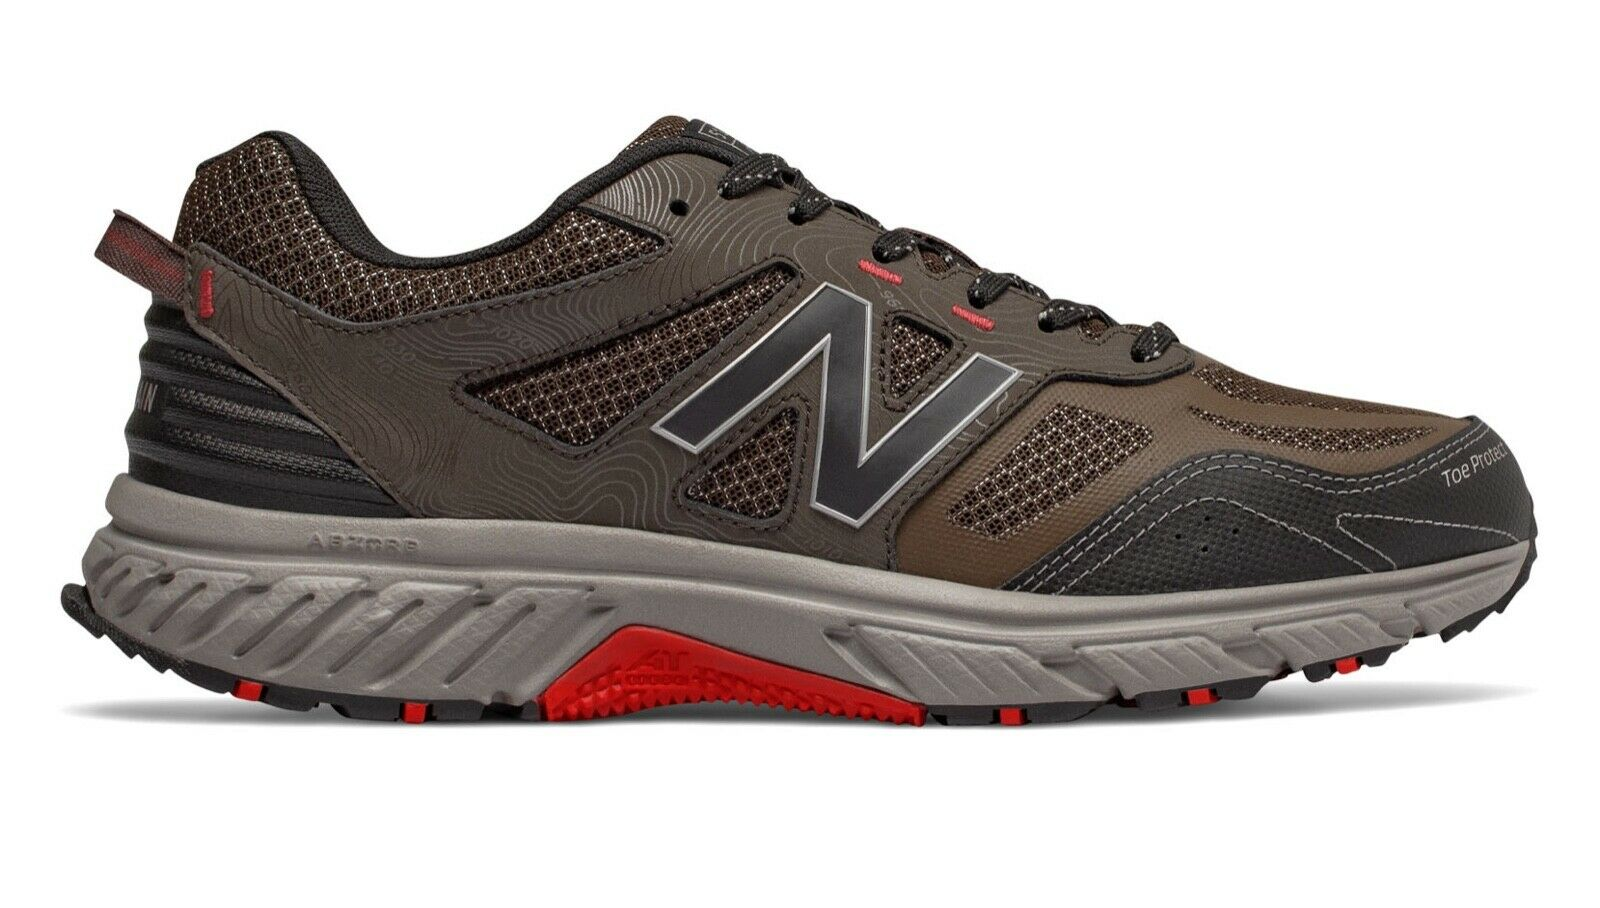 New Balance shoes MT510CC4 510v4 Trail Hiking Athletic Cushioning Brown Mesh